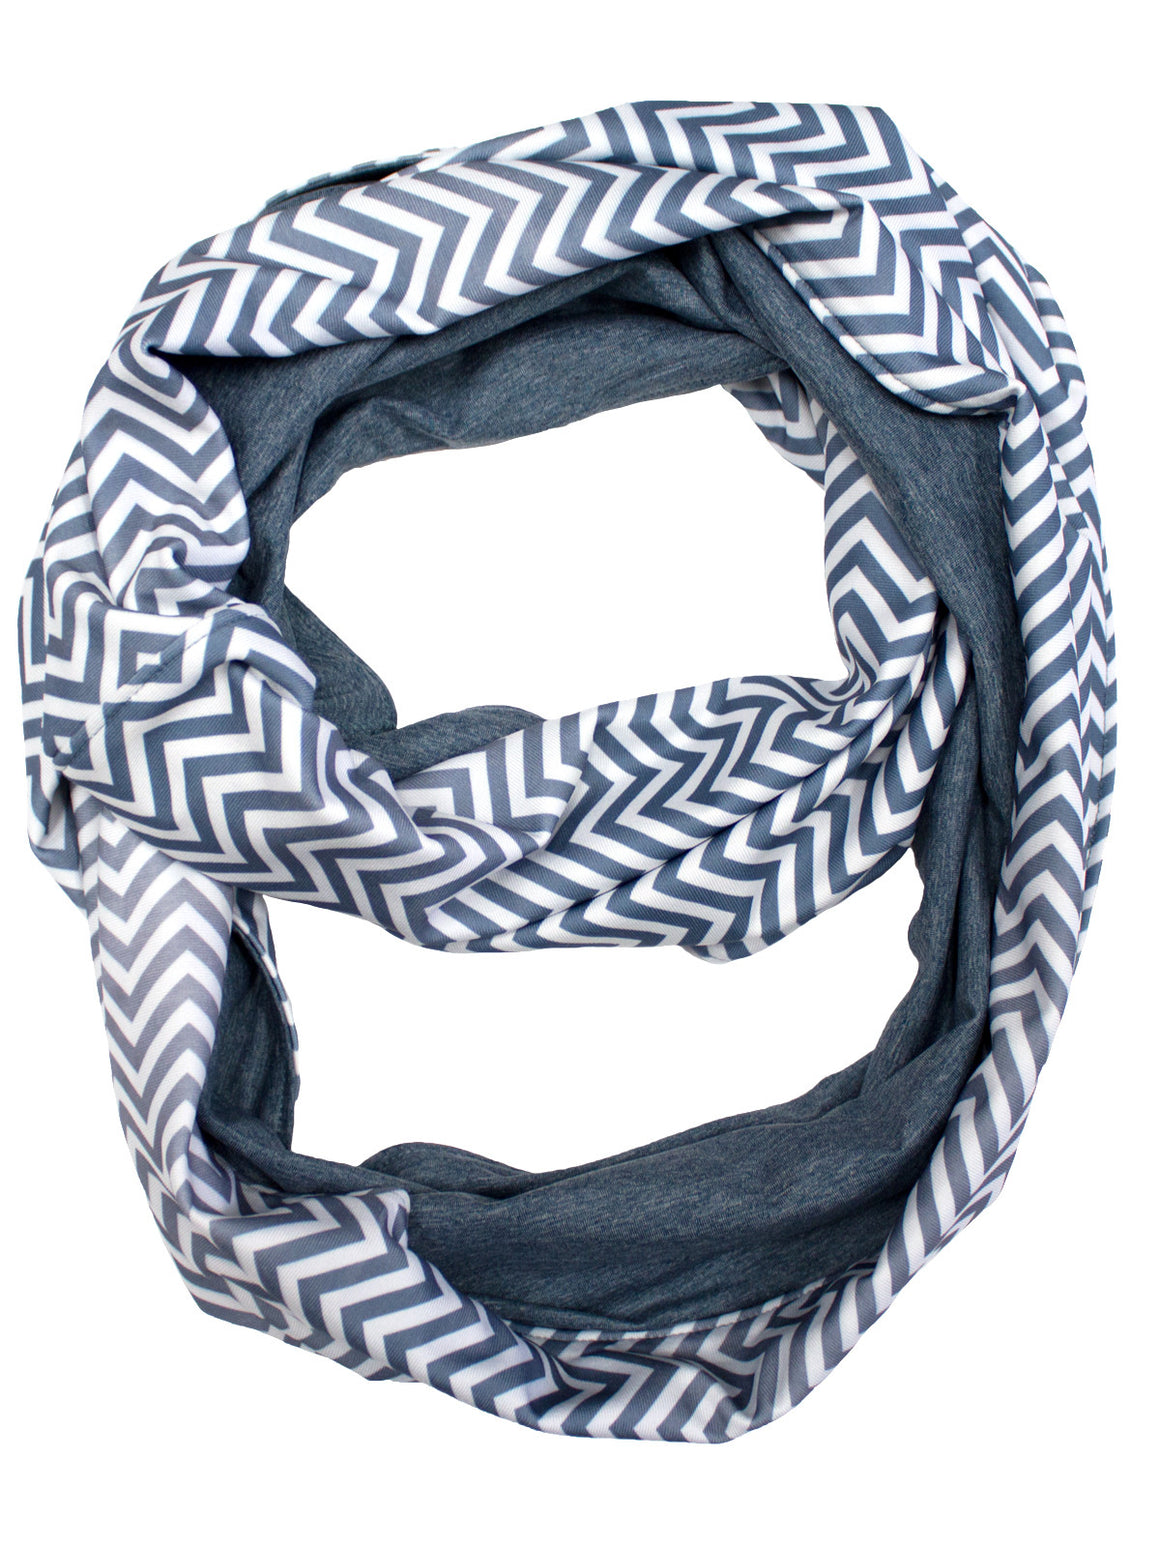 Infinity Scarf - White (Flint Stone / Denim Heather)